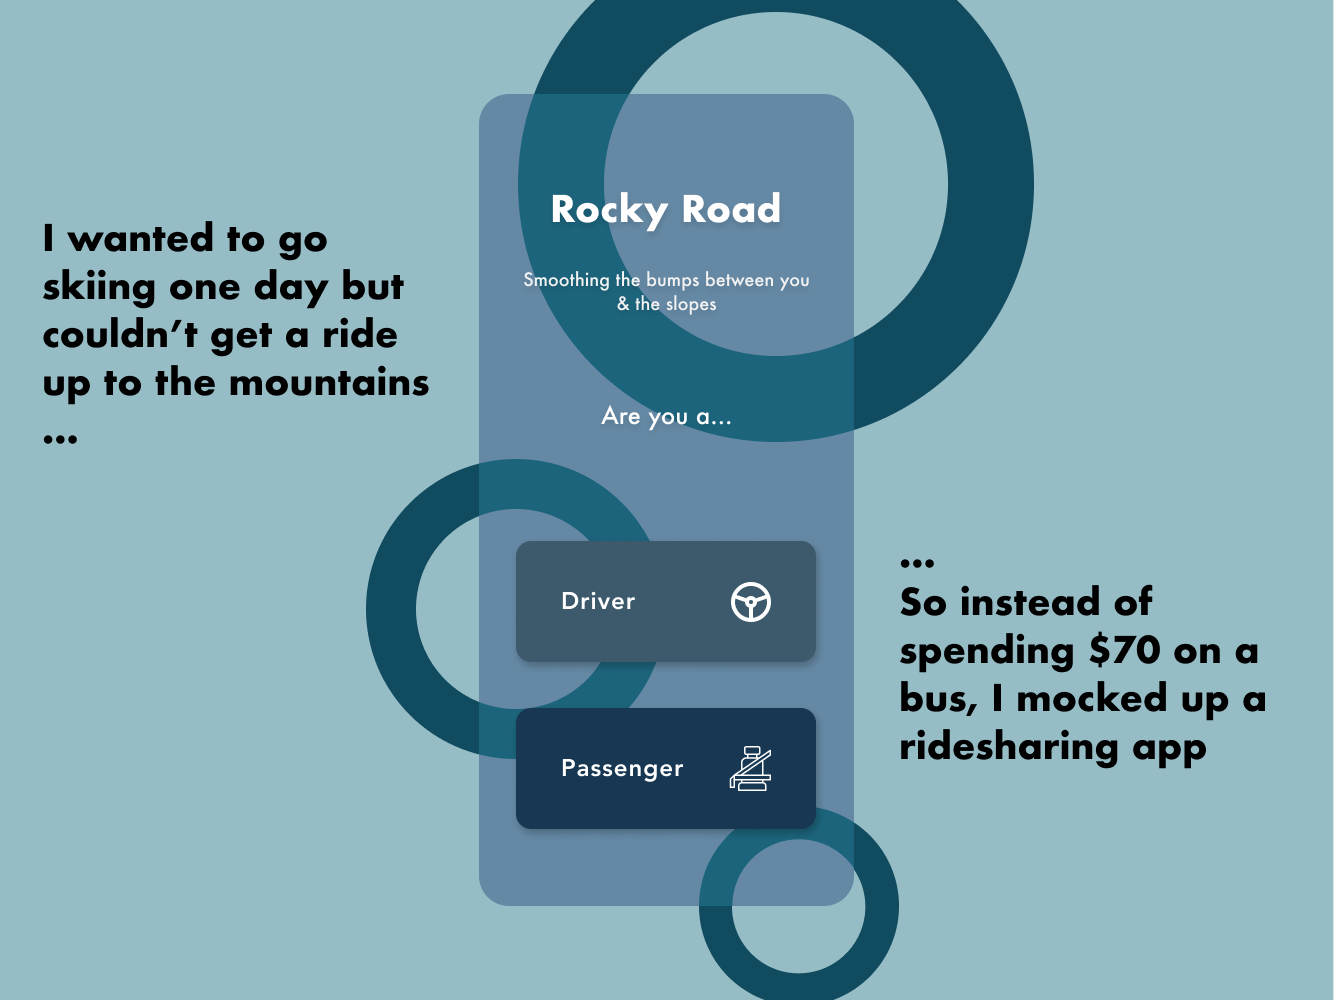 Rocky Road - Ski/Snowboard Ridesharing App Concept iphone x mobile app bus mountains outdoors snowboarding skiing car ride-sharing ridesharing rideshare ride lyft uber